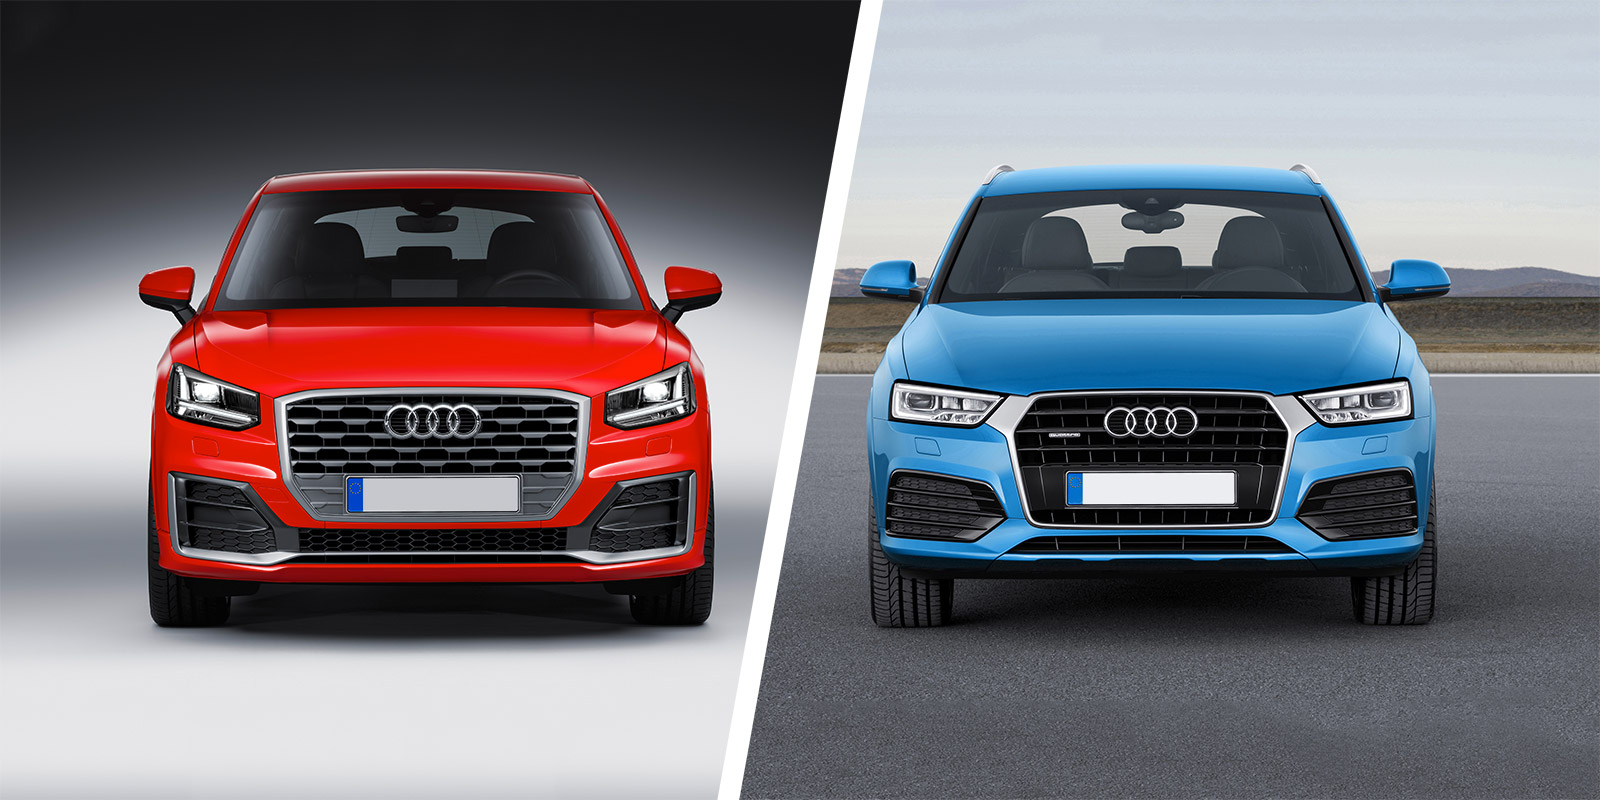 Audi Q2 Vs Q3 Suv Comparison Carwow